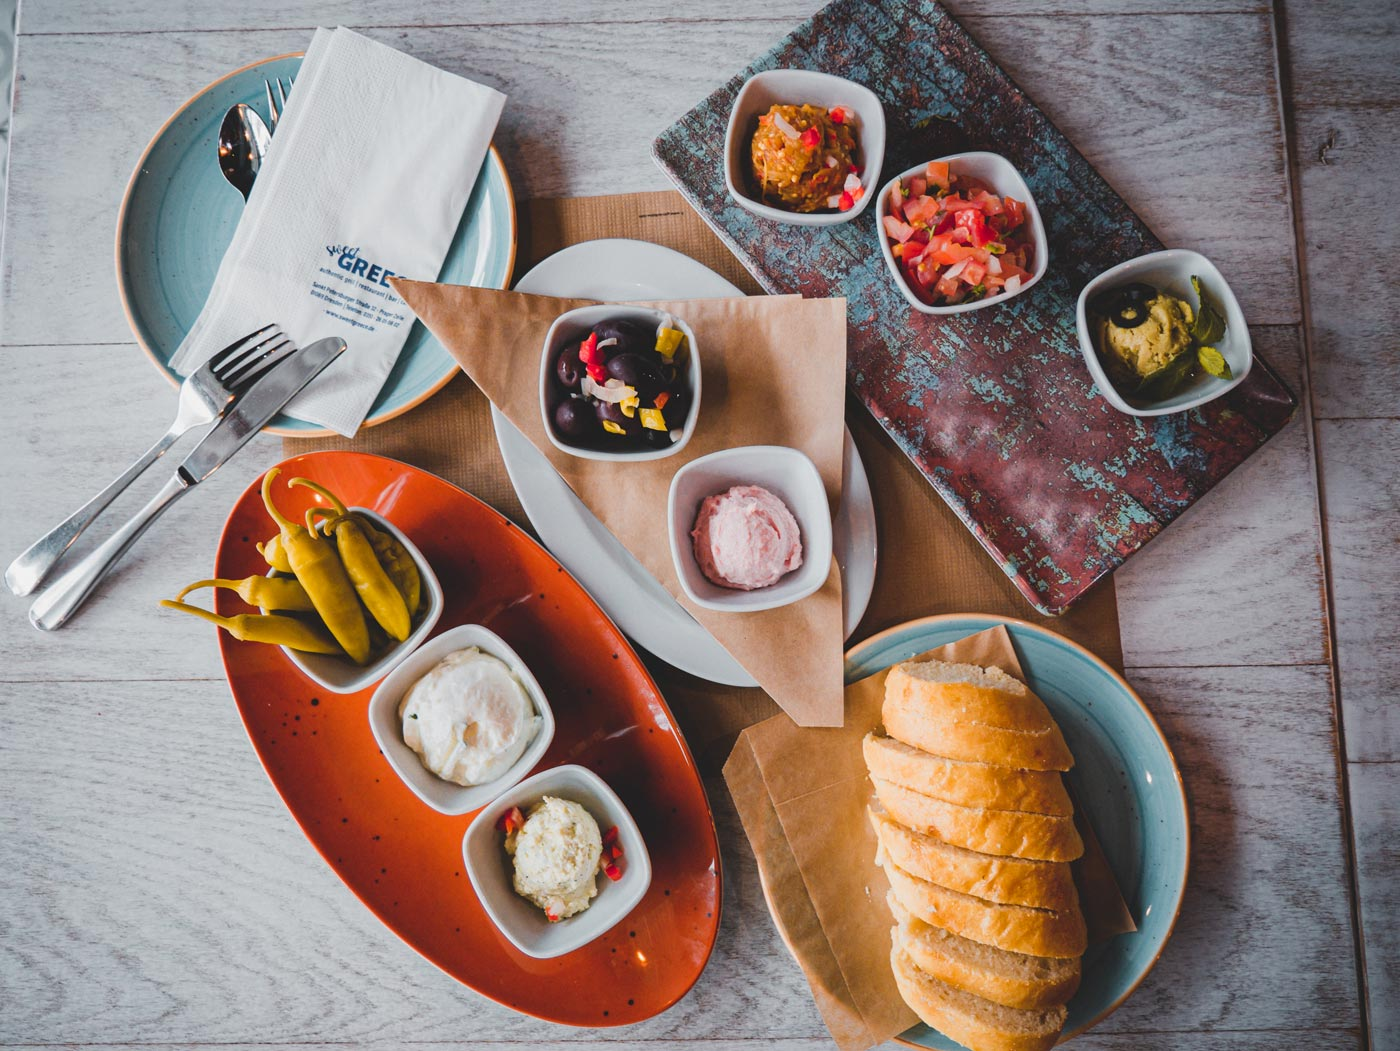 The Pikilia plate as a starter for pick-up at the sweet GREECE restaurant in Dresden